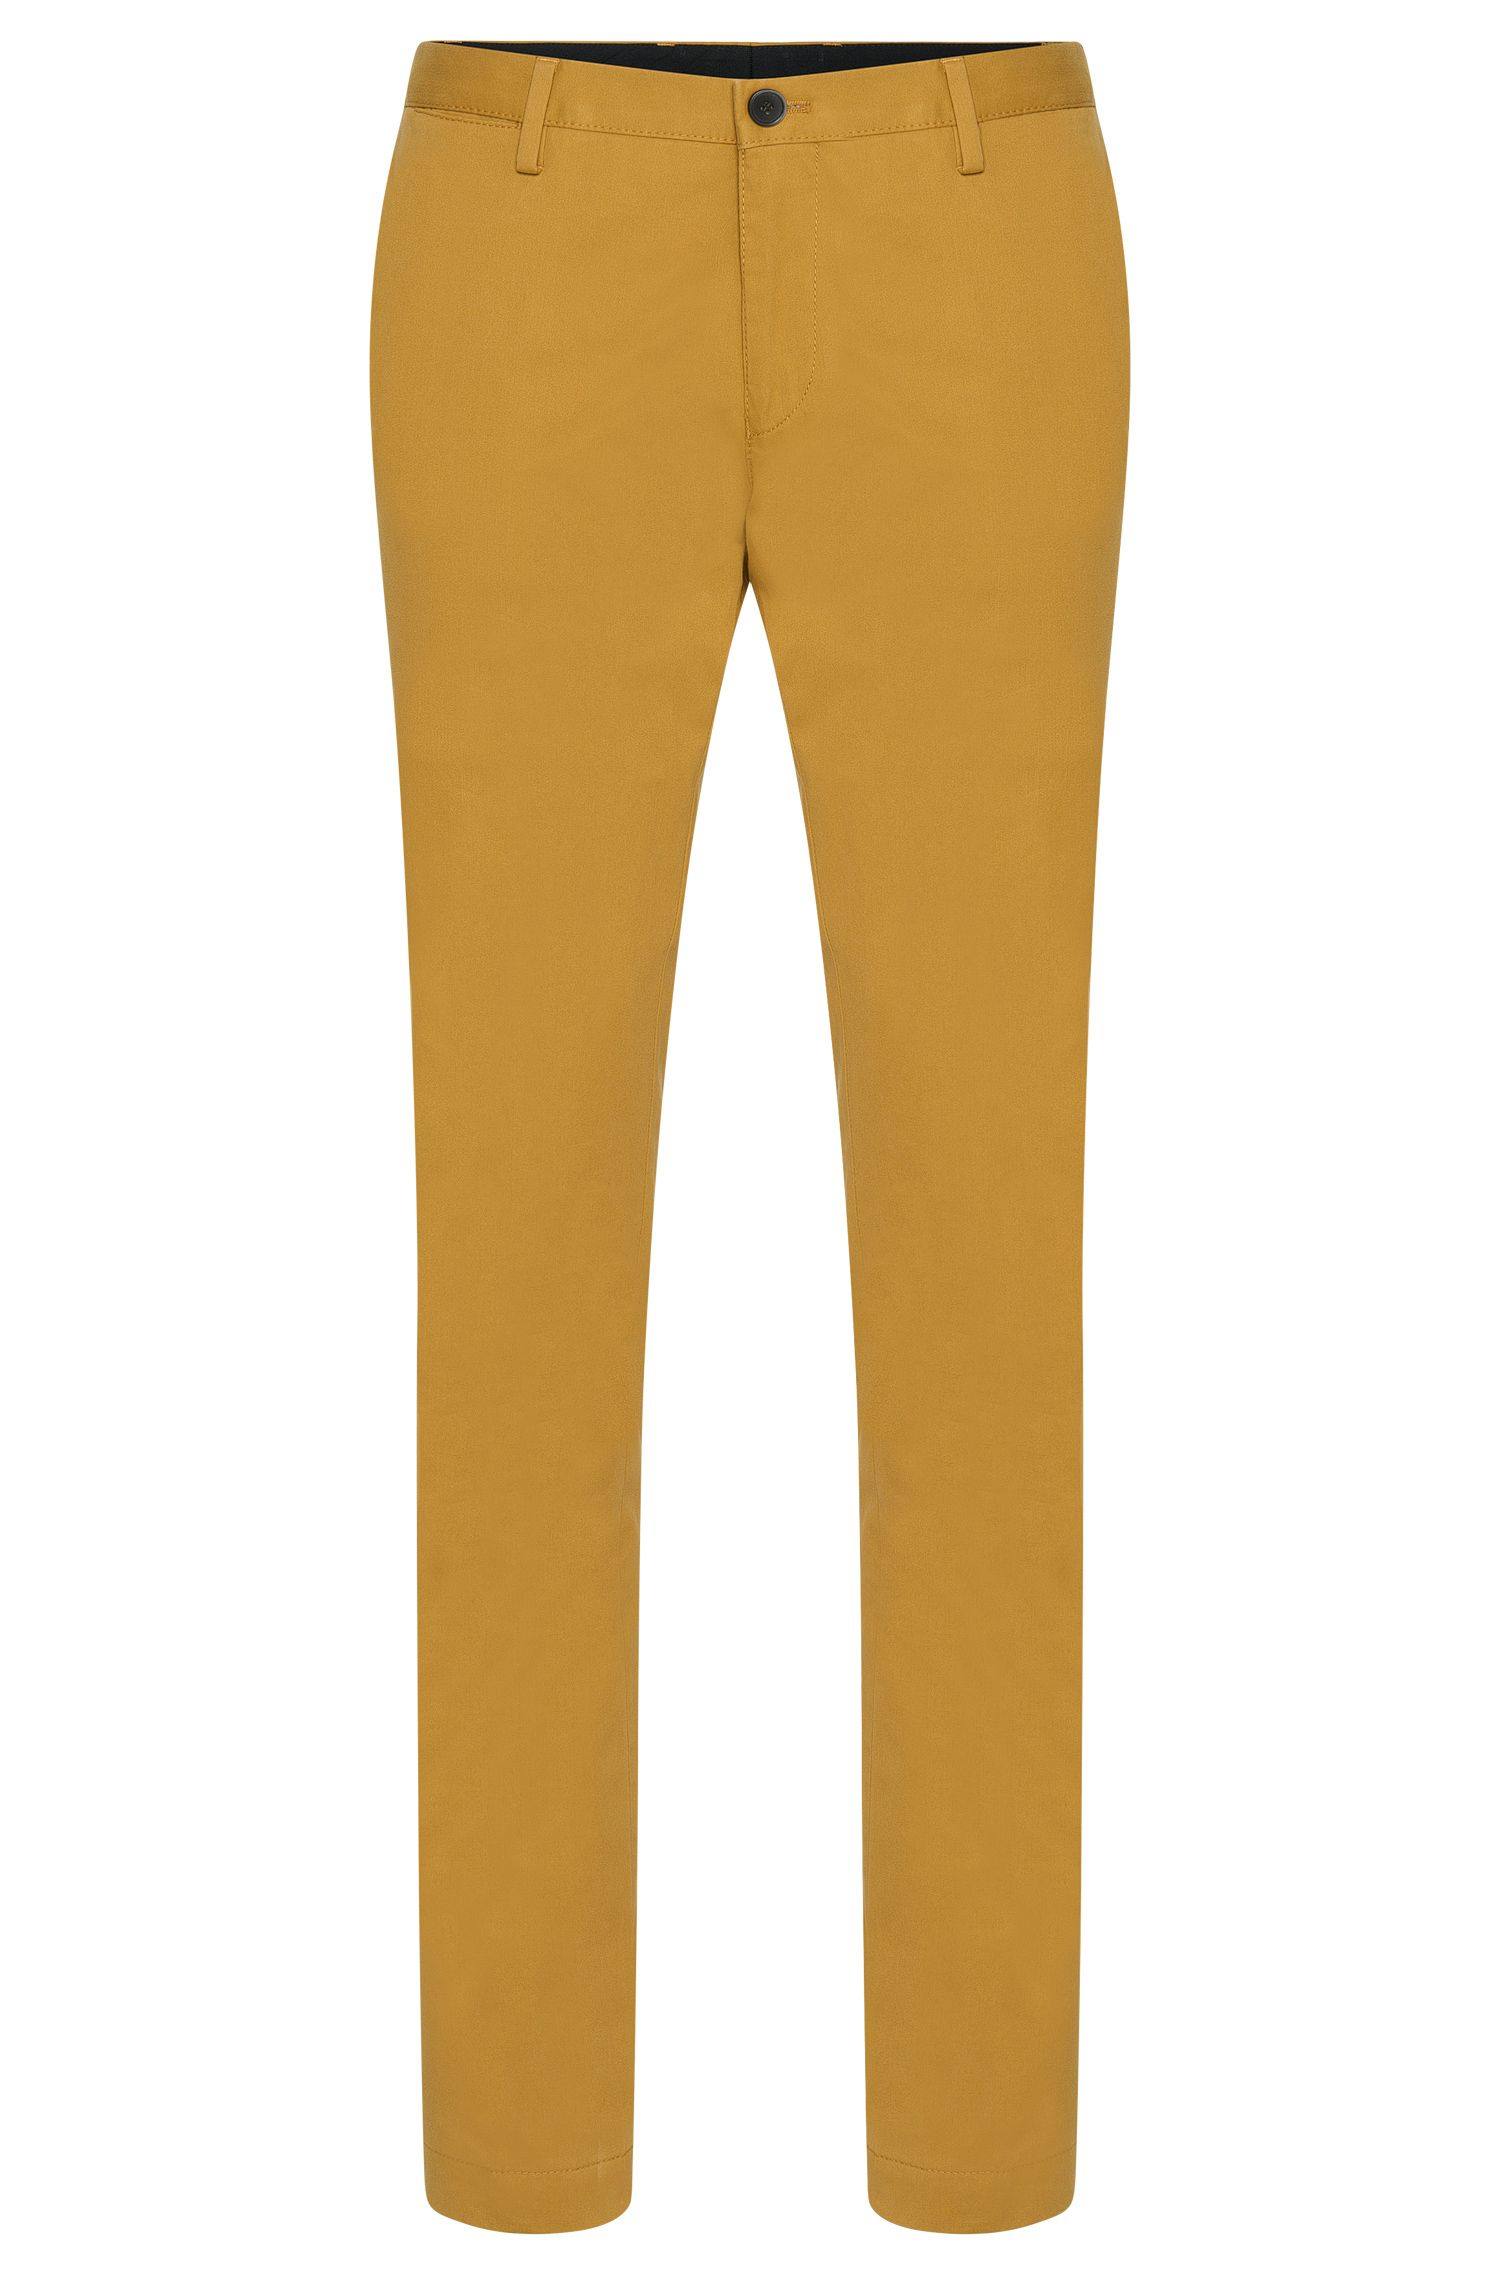 Stretch Cotton Chino Pant, Slim Fit | Stanino W